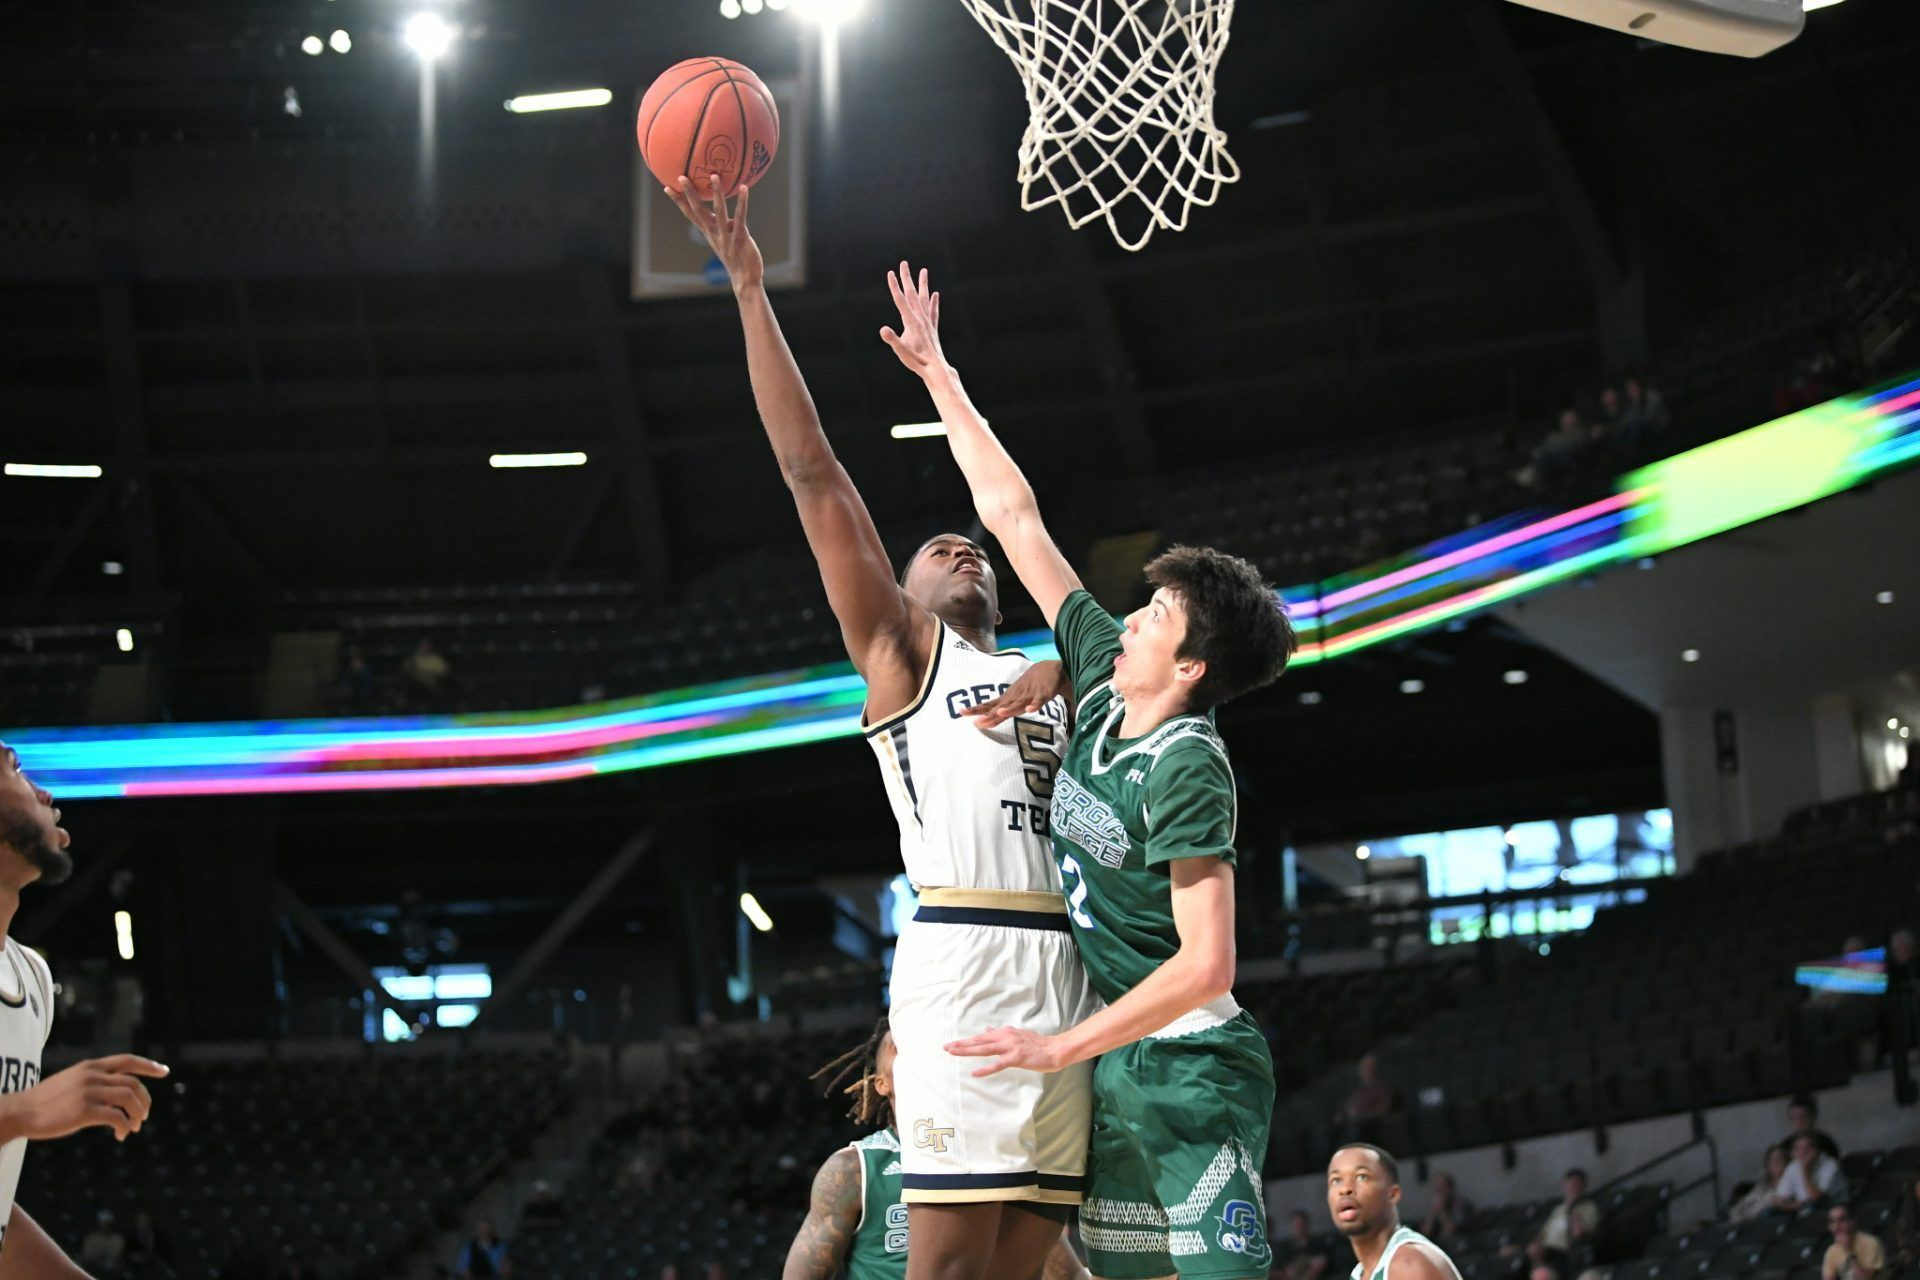 Tech Basketball Downs College in